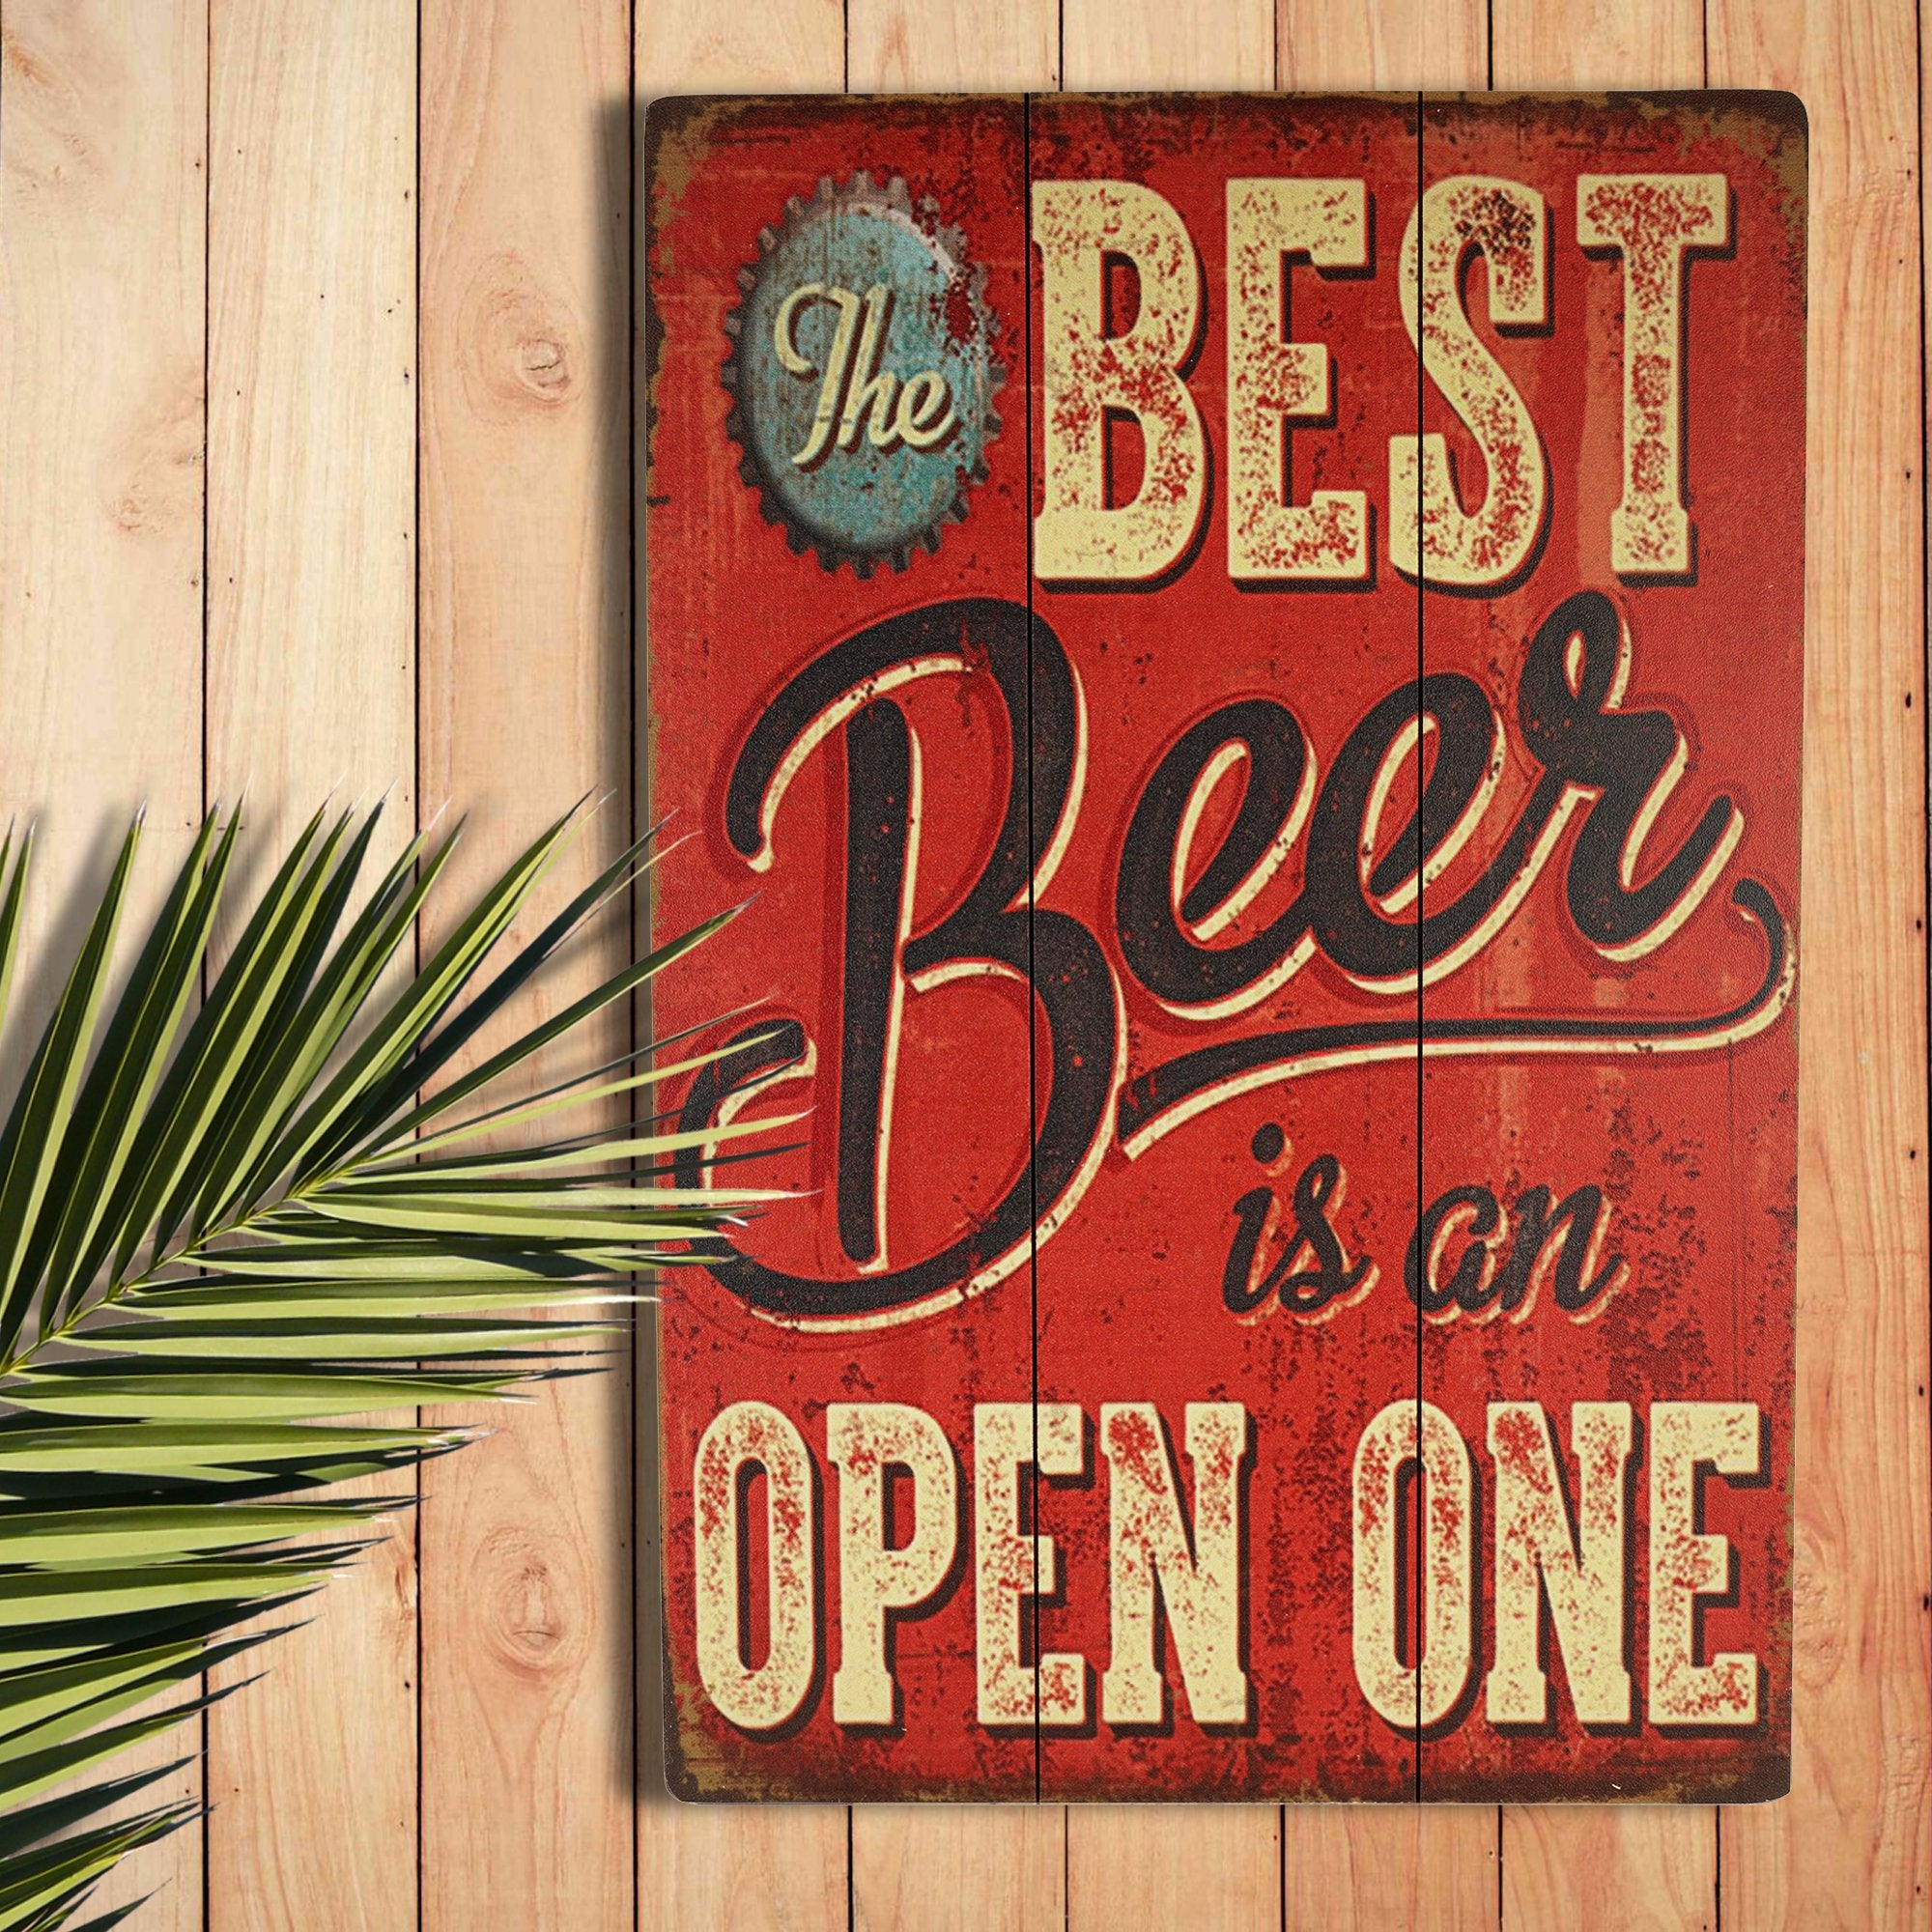 Best Beer Wall Plaque from Teak Tale Home Decors